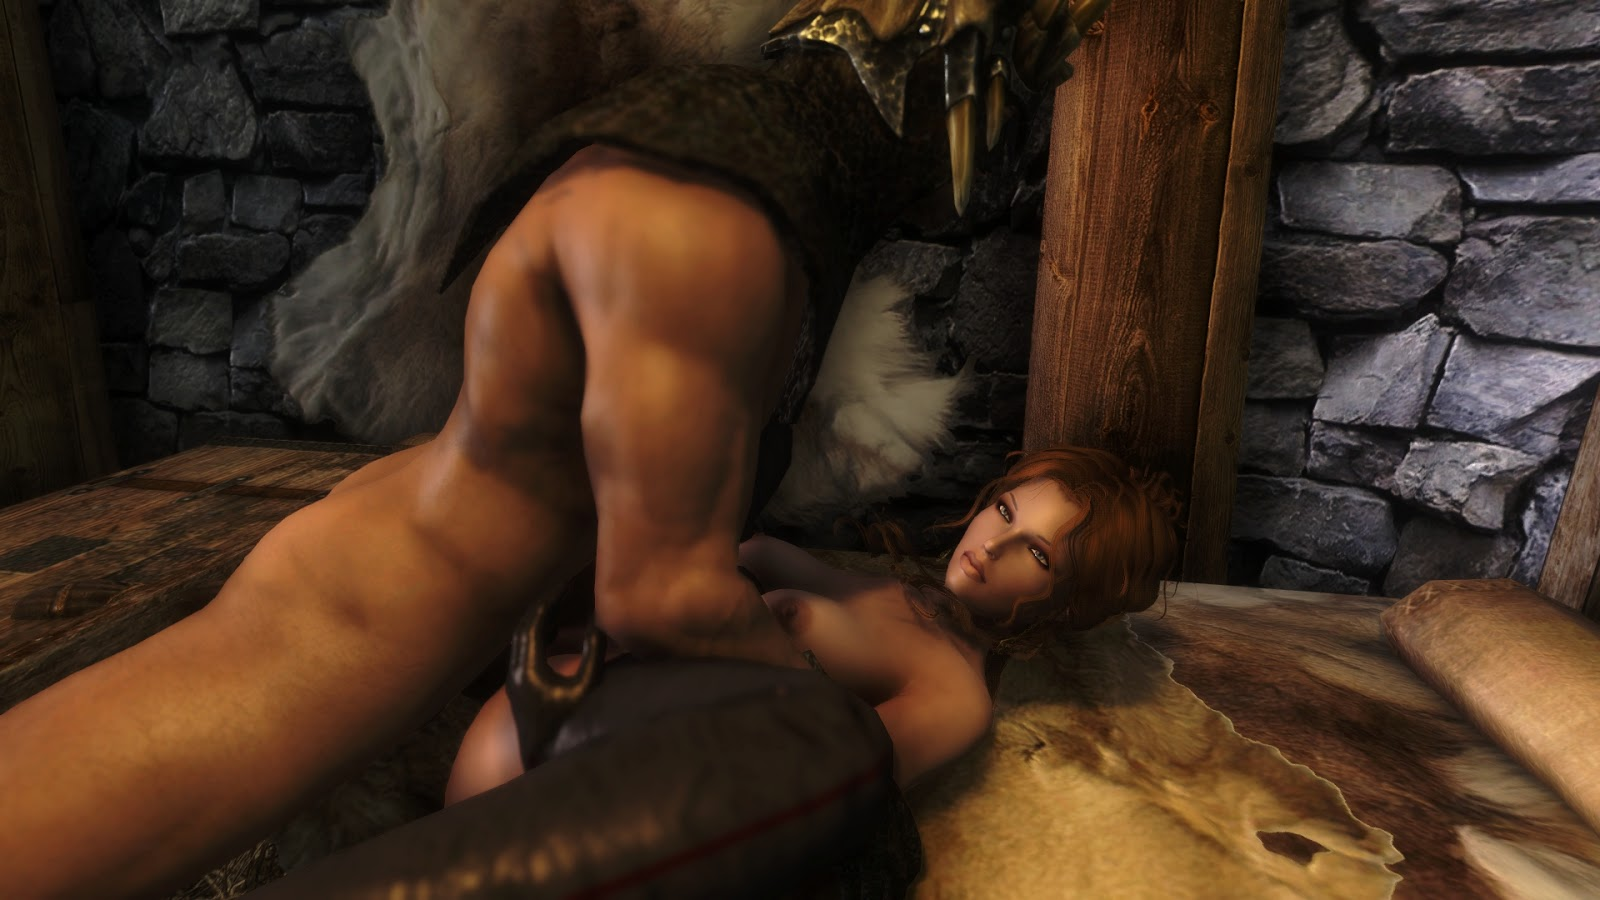 Monster dragon porn videos gay skyrim z  pron pictures